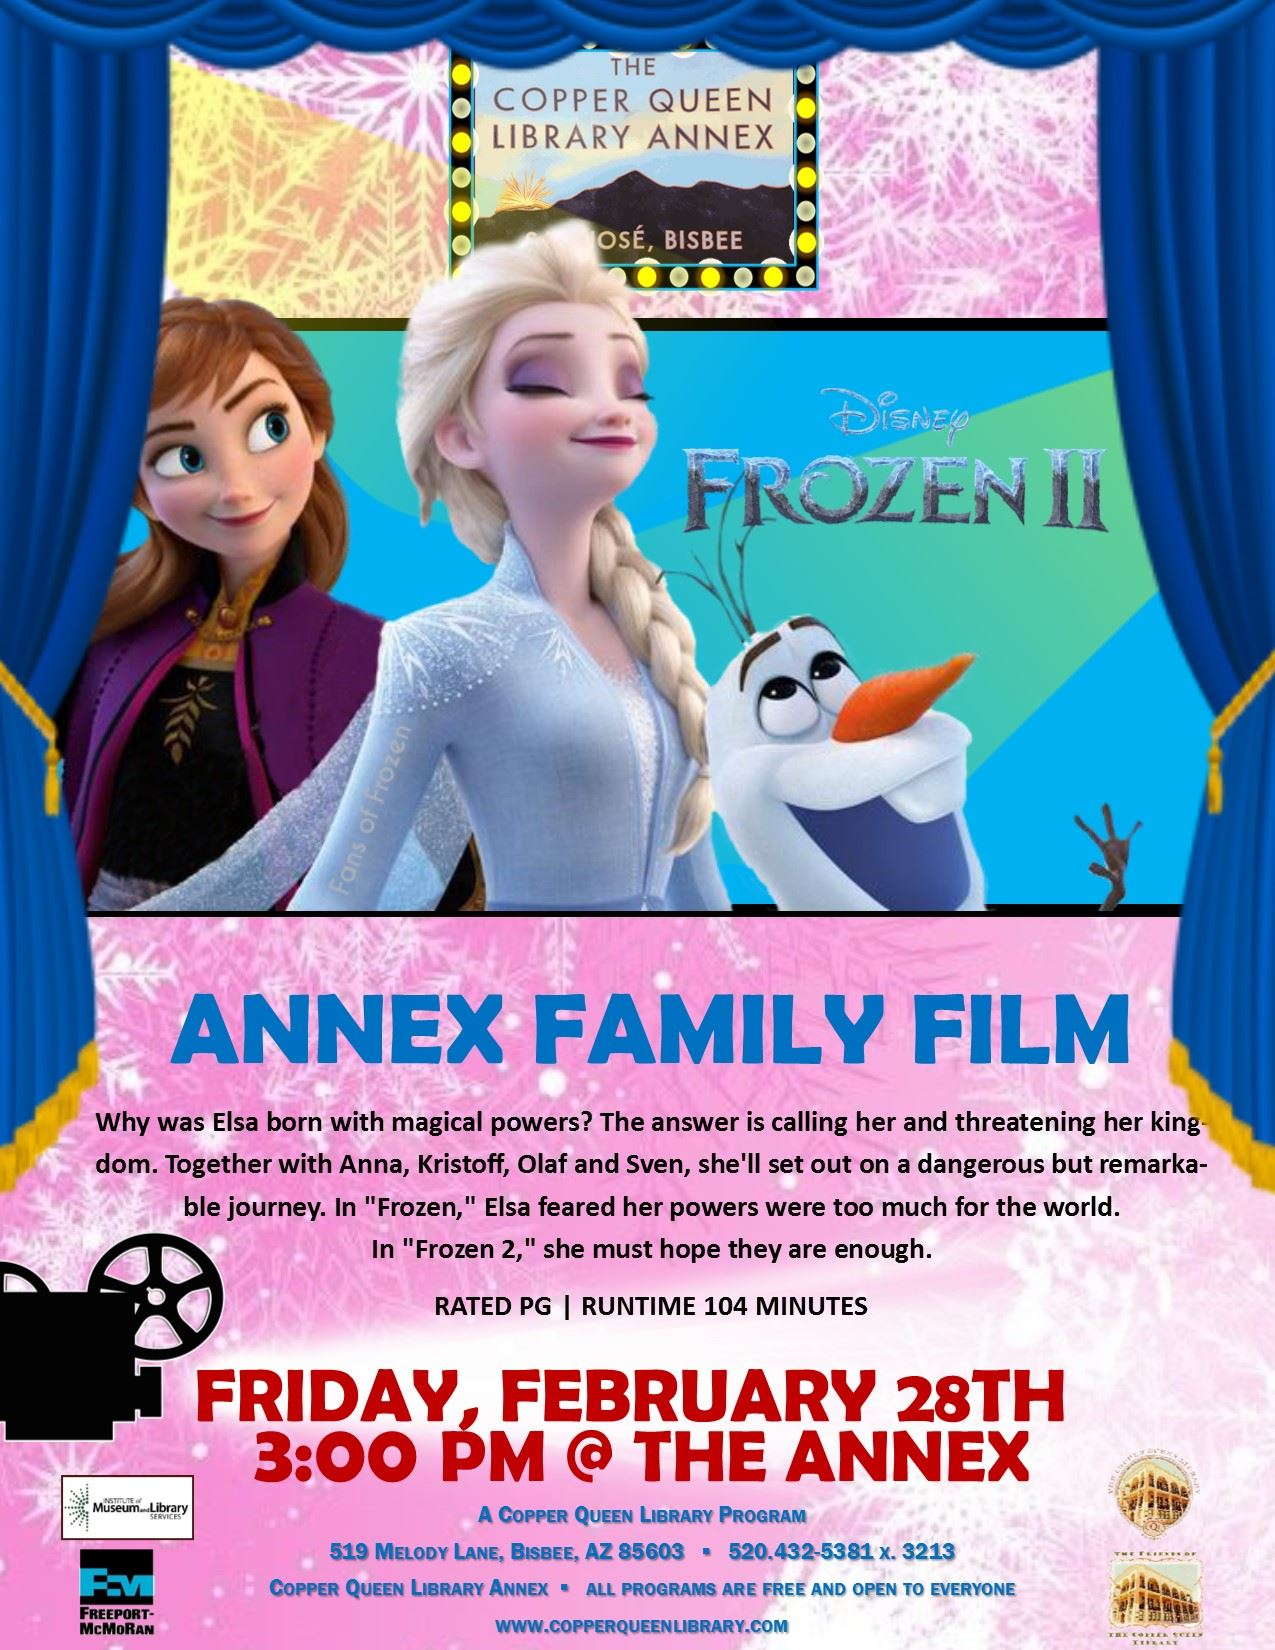 Annex Movie Frozen 2